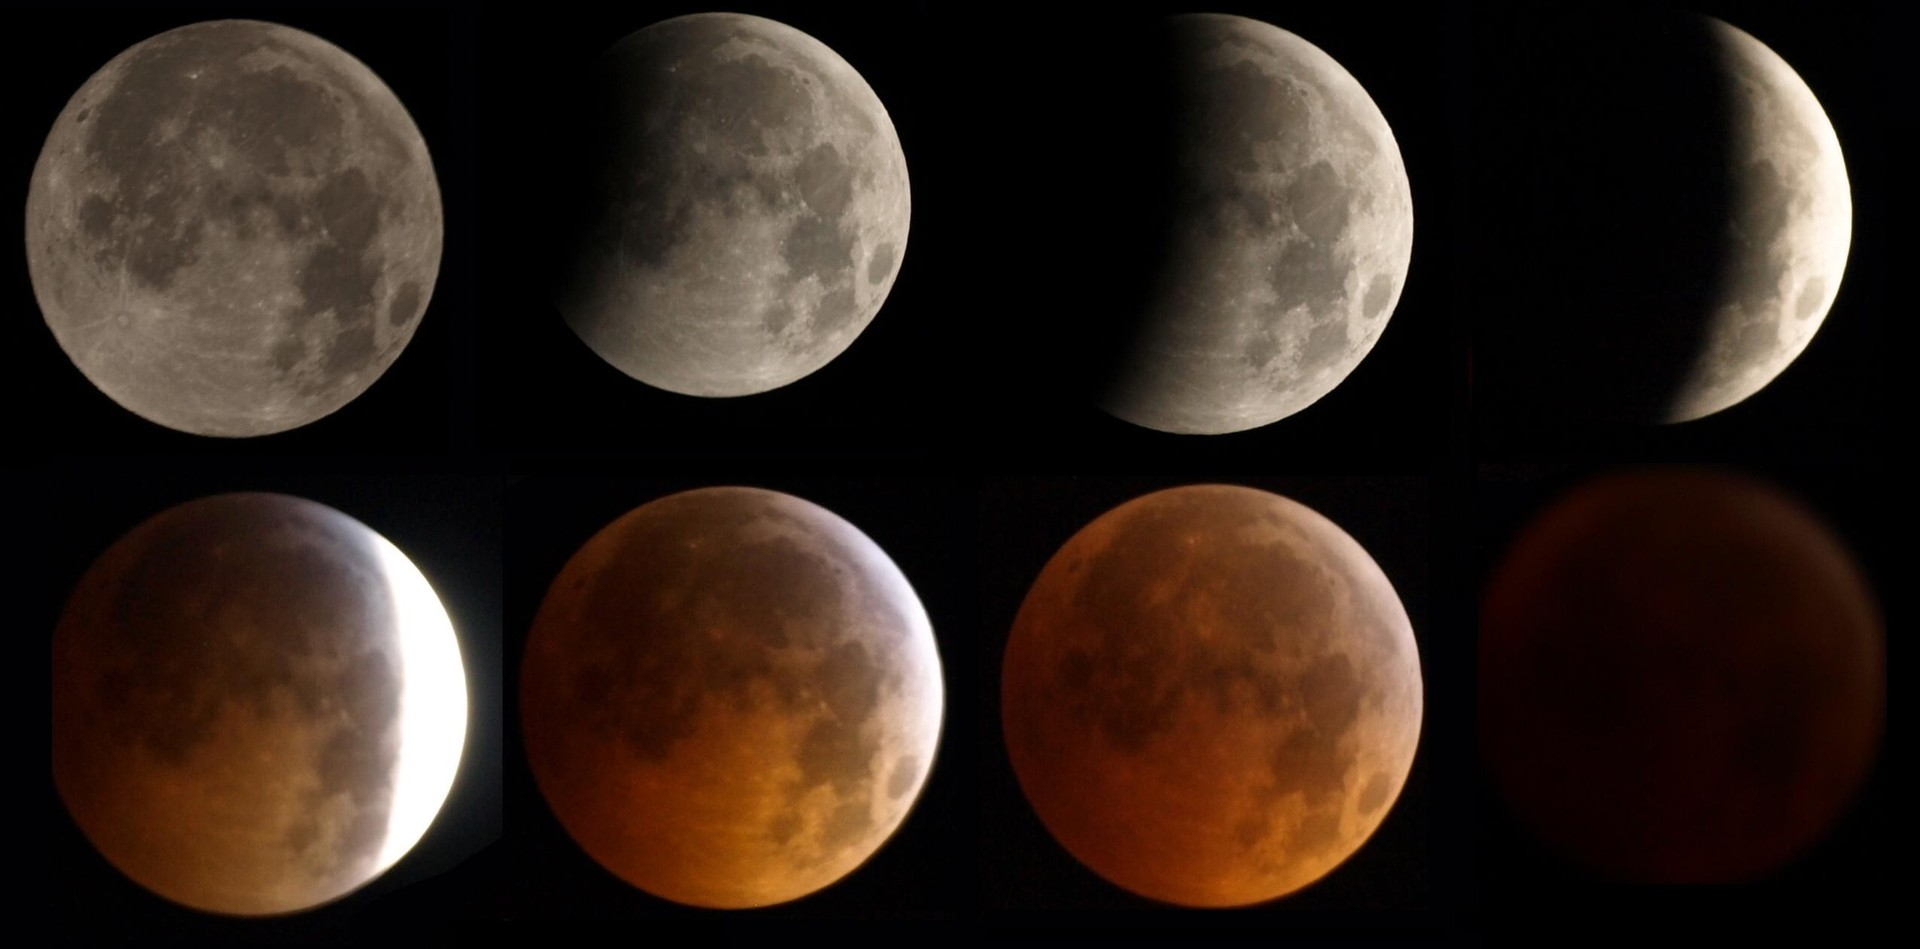 As fases de um eclipse lunar completo (Foto: Nasa)